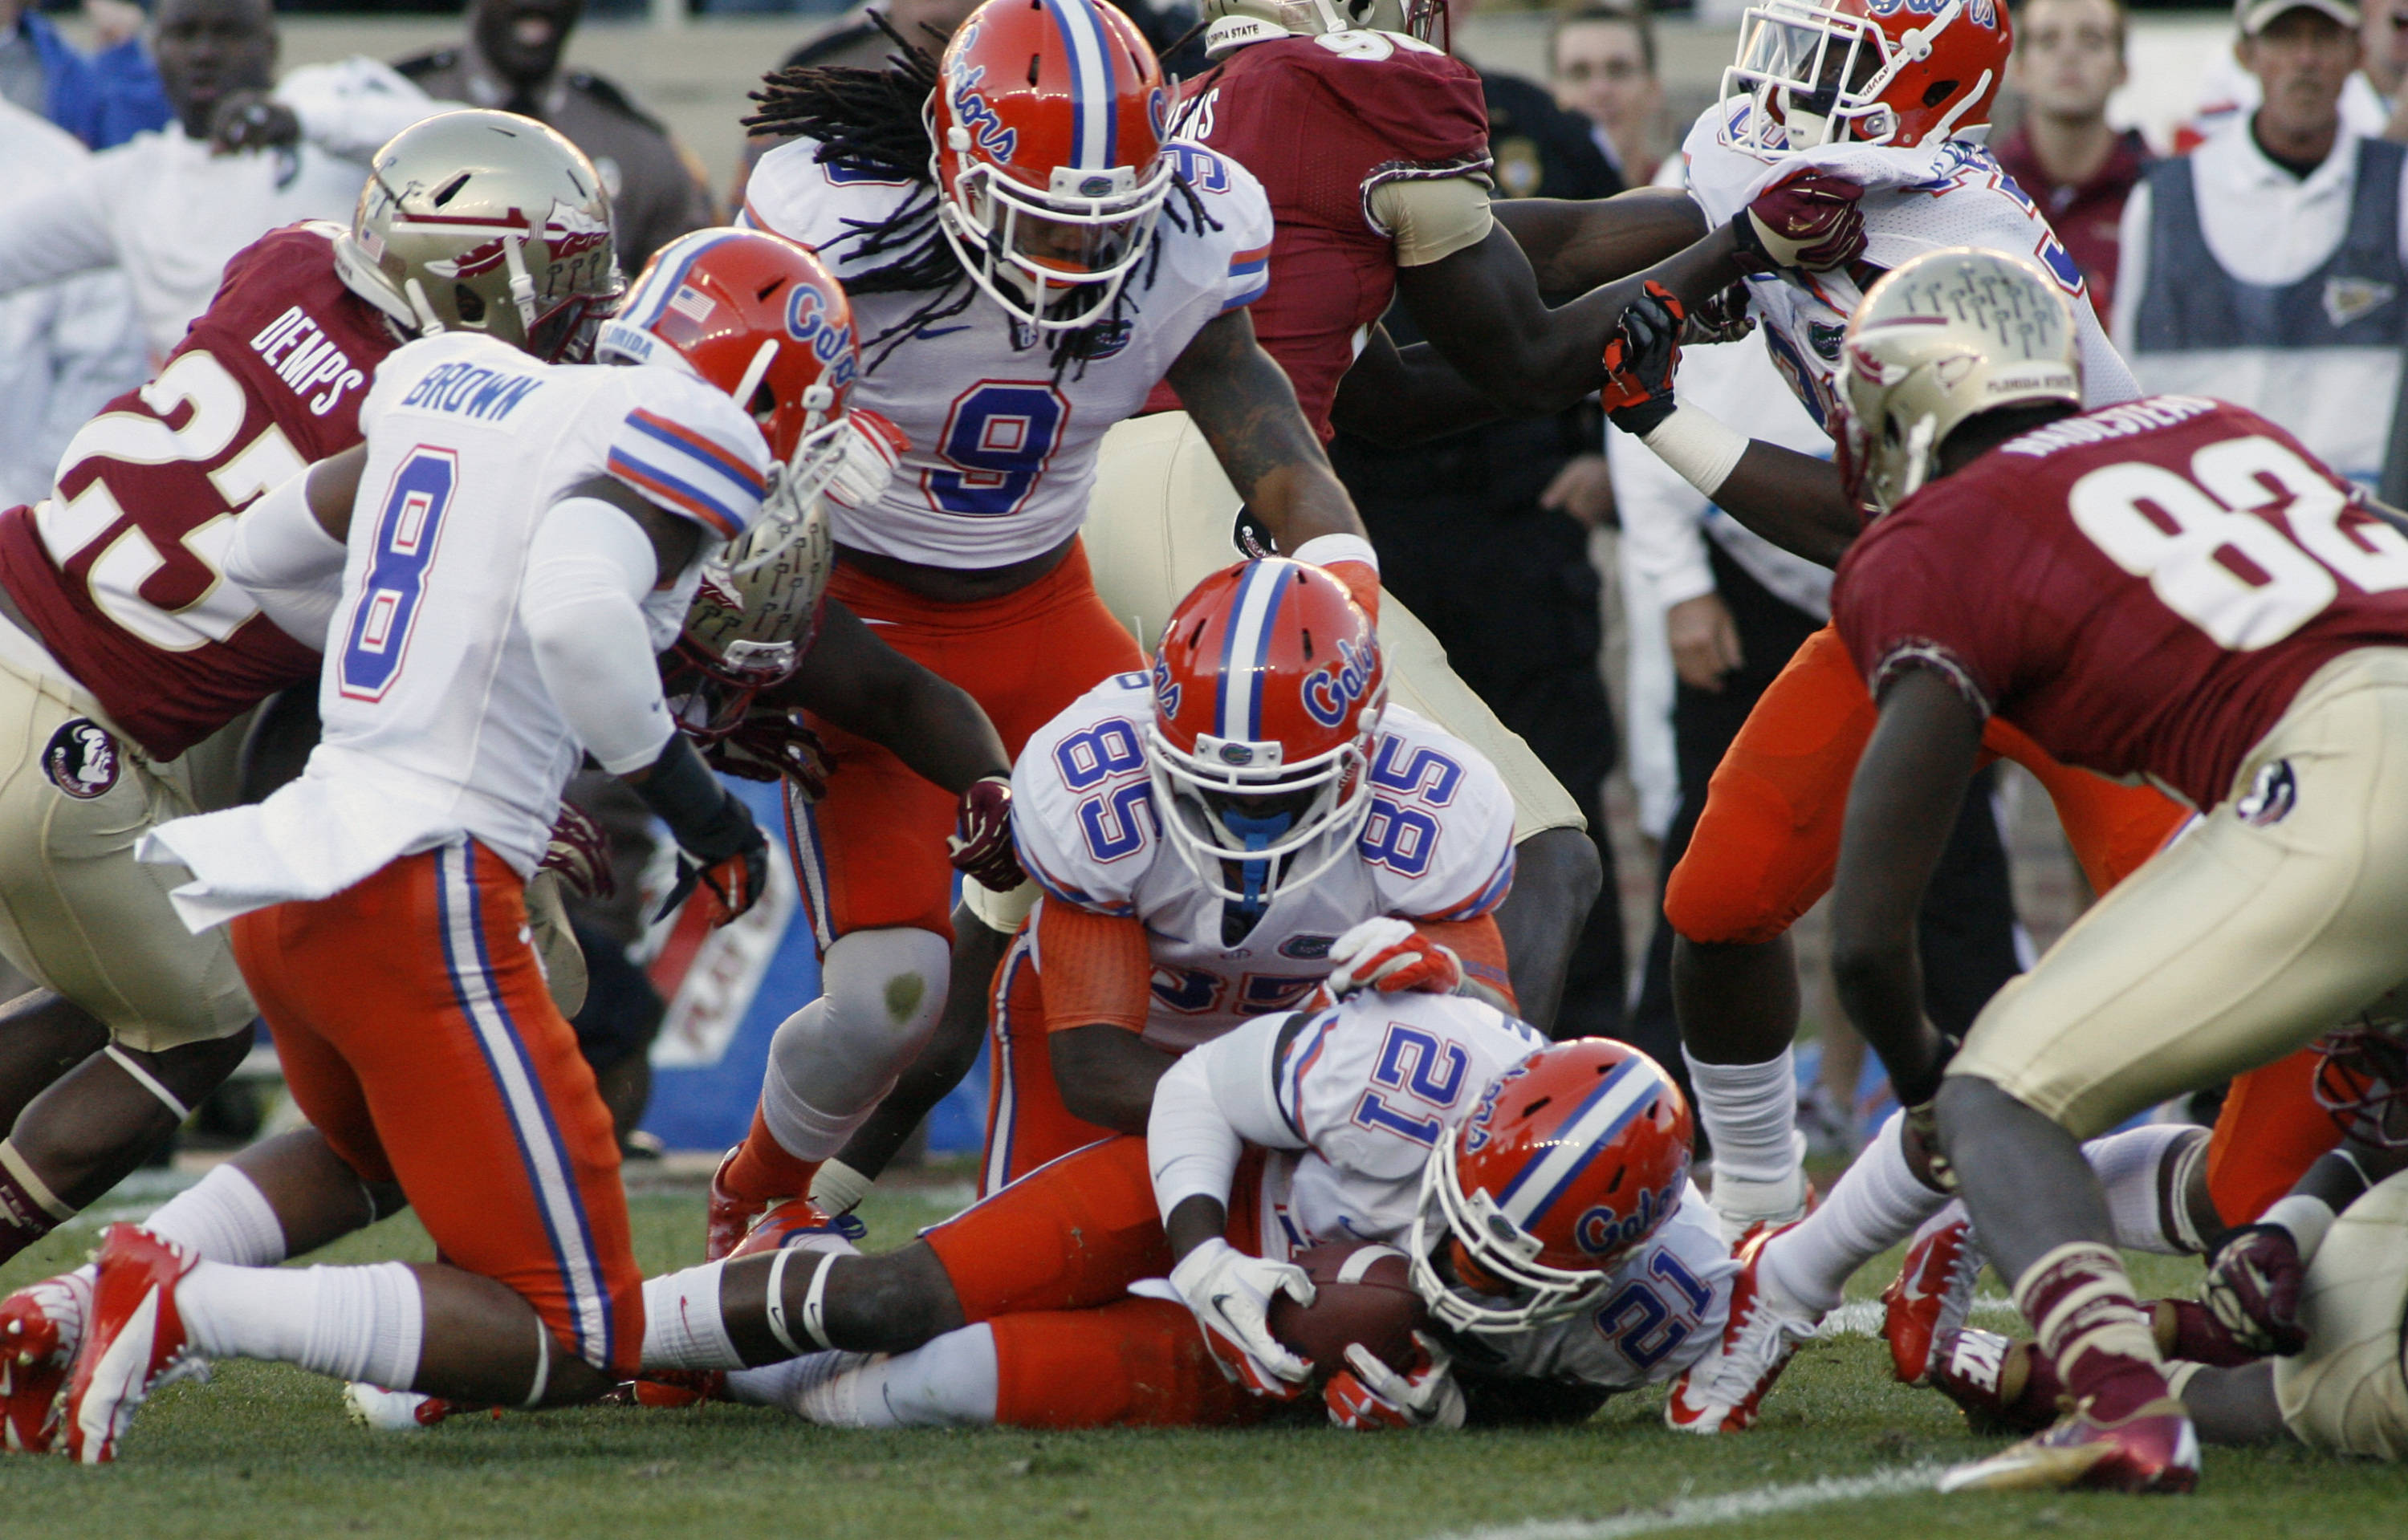 Florida's Jabari Gorman (21) recovers a fumble by Florida State's Karlos Williams on a  kickoff return. (AP Photo/Phil Sears)